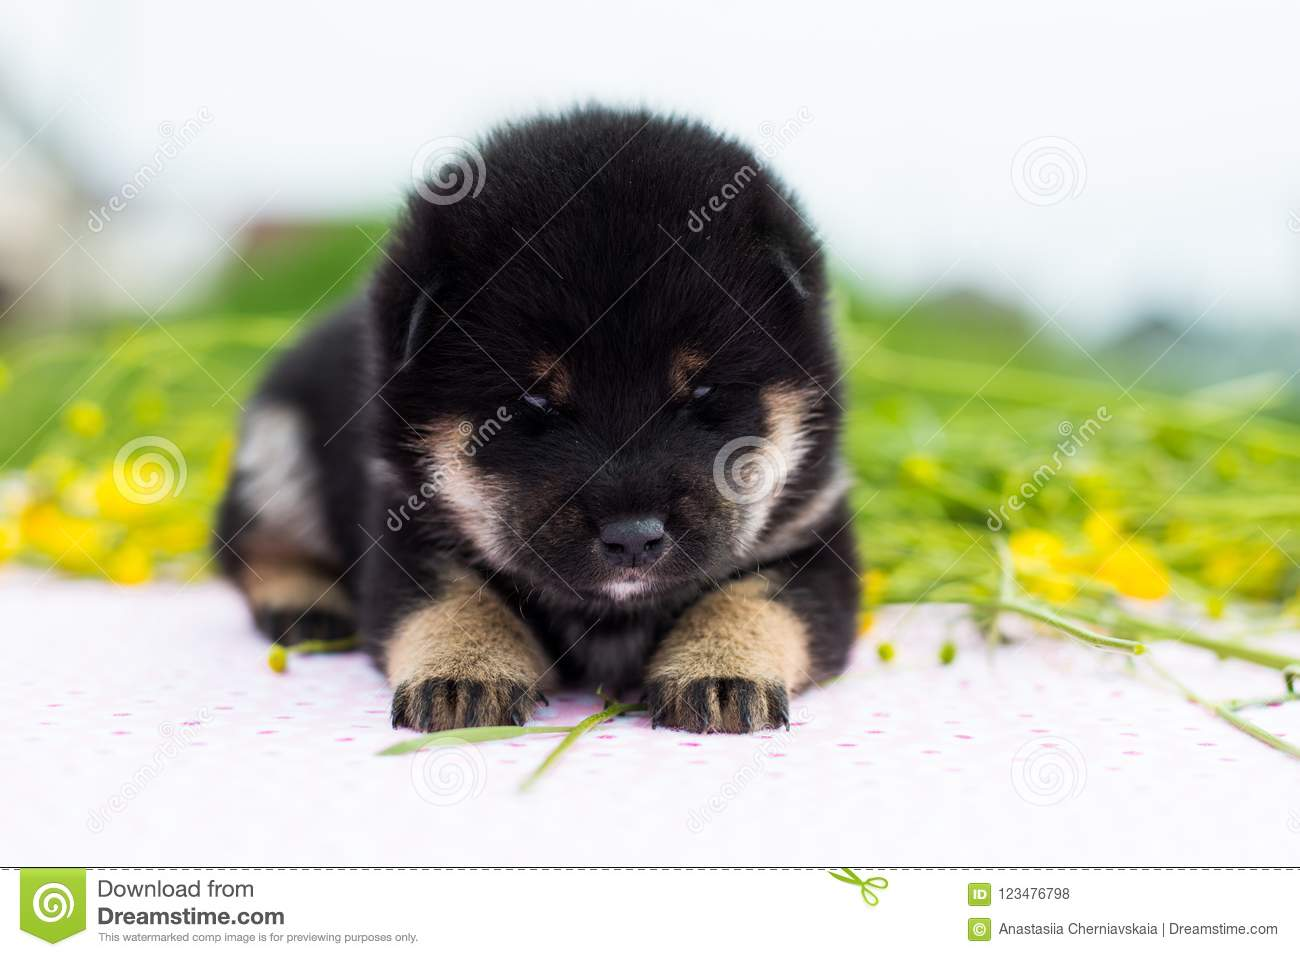 Profile Portrait Of Serious Two Weeks Old Shiba Inu Puppy Lying On The Table In The Buttercup Field Stock Photo Image Of Background Japan 123476798